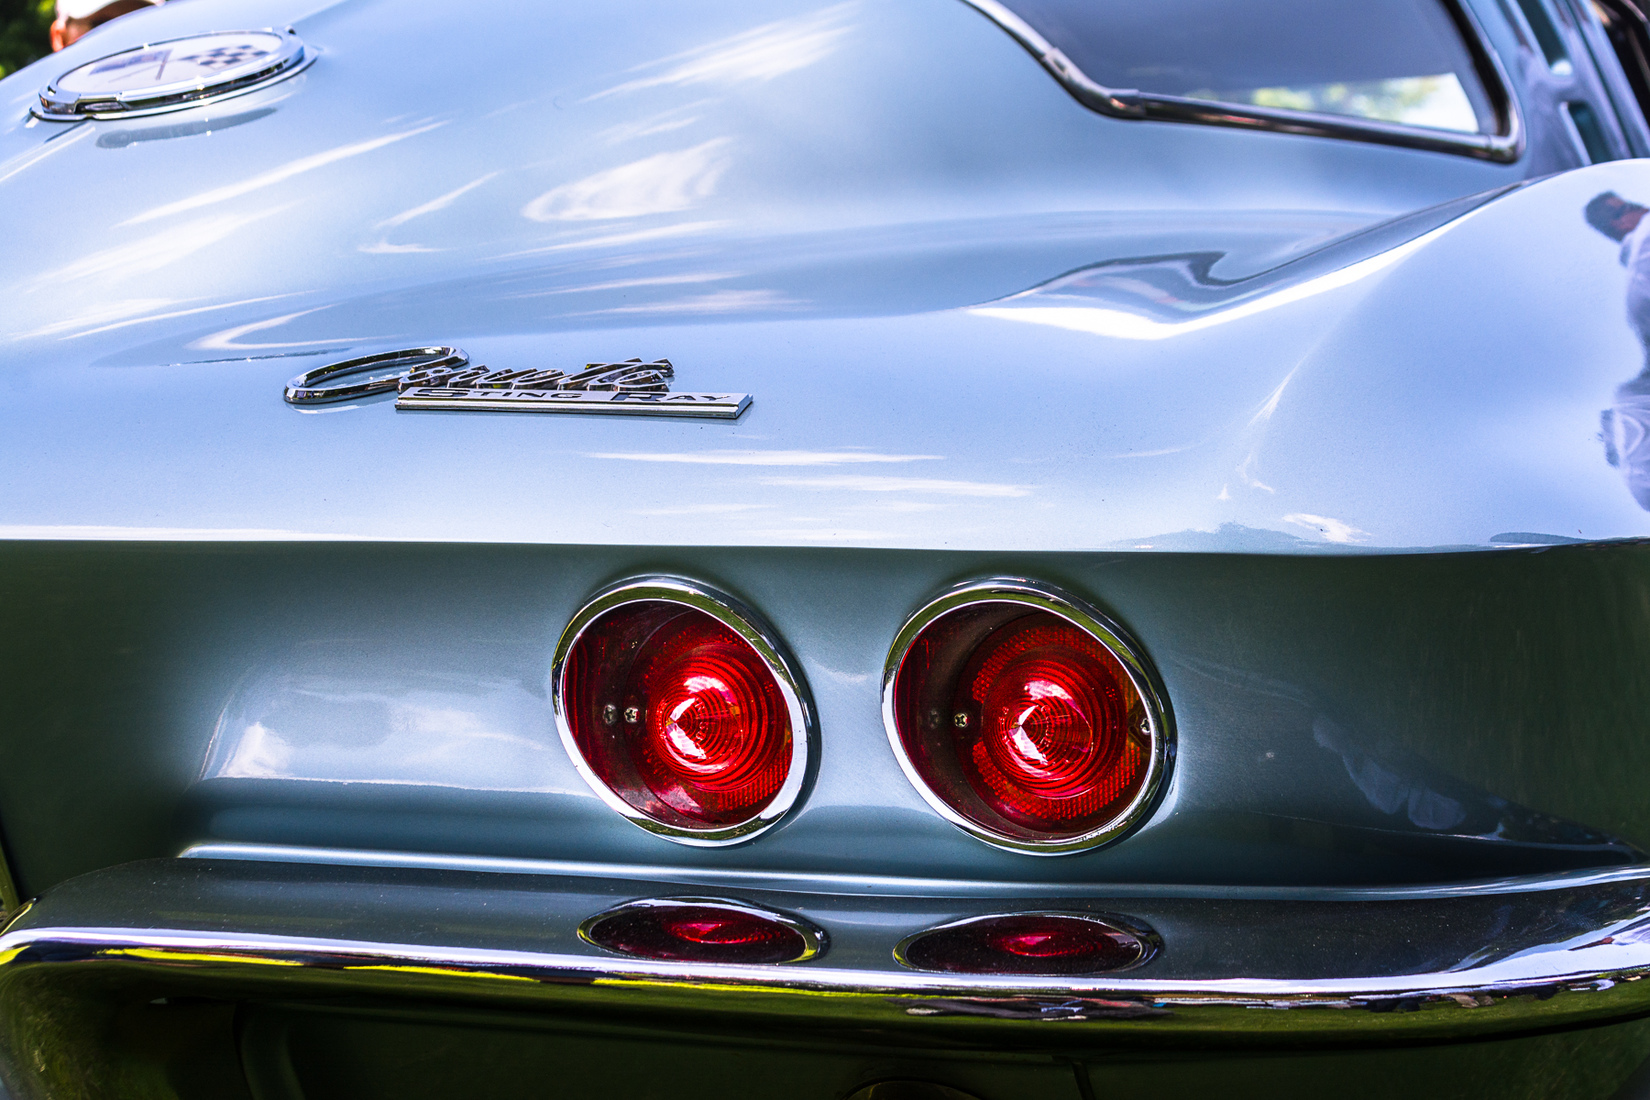 Classic Automobiles 1963 Corvette Stingray Split-window Coupe